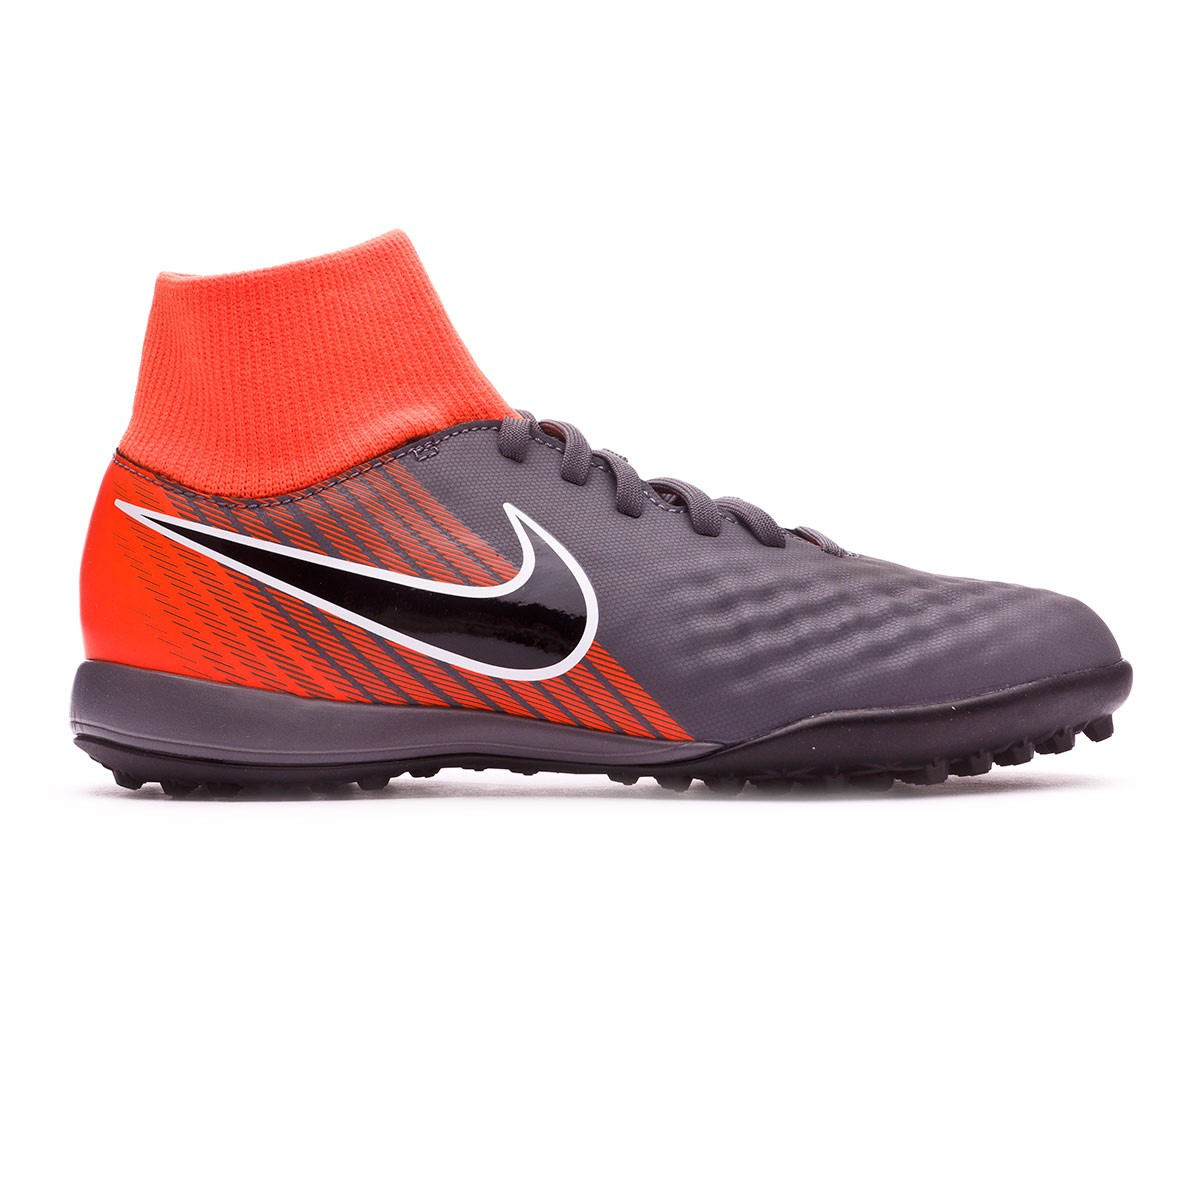 6825124d360 Football Boot Nike Kids Magista ObraX II Academy DF Turf Dark grey-Black-Total  orange-White - Soloporteros es ahora Fútbol Emotion